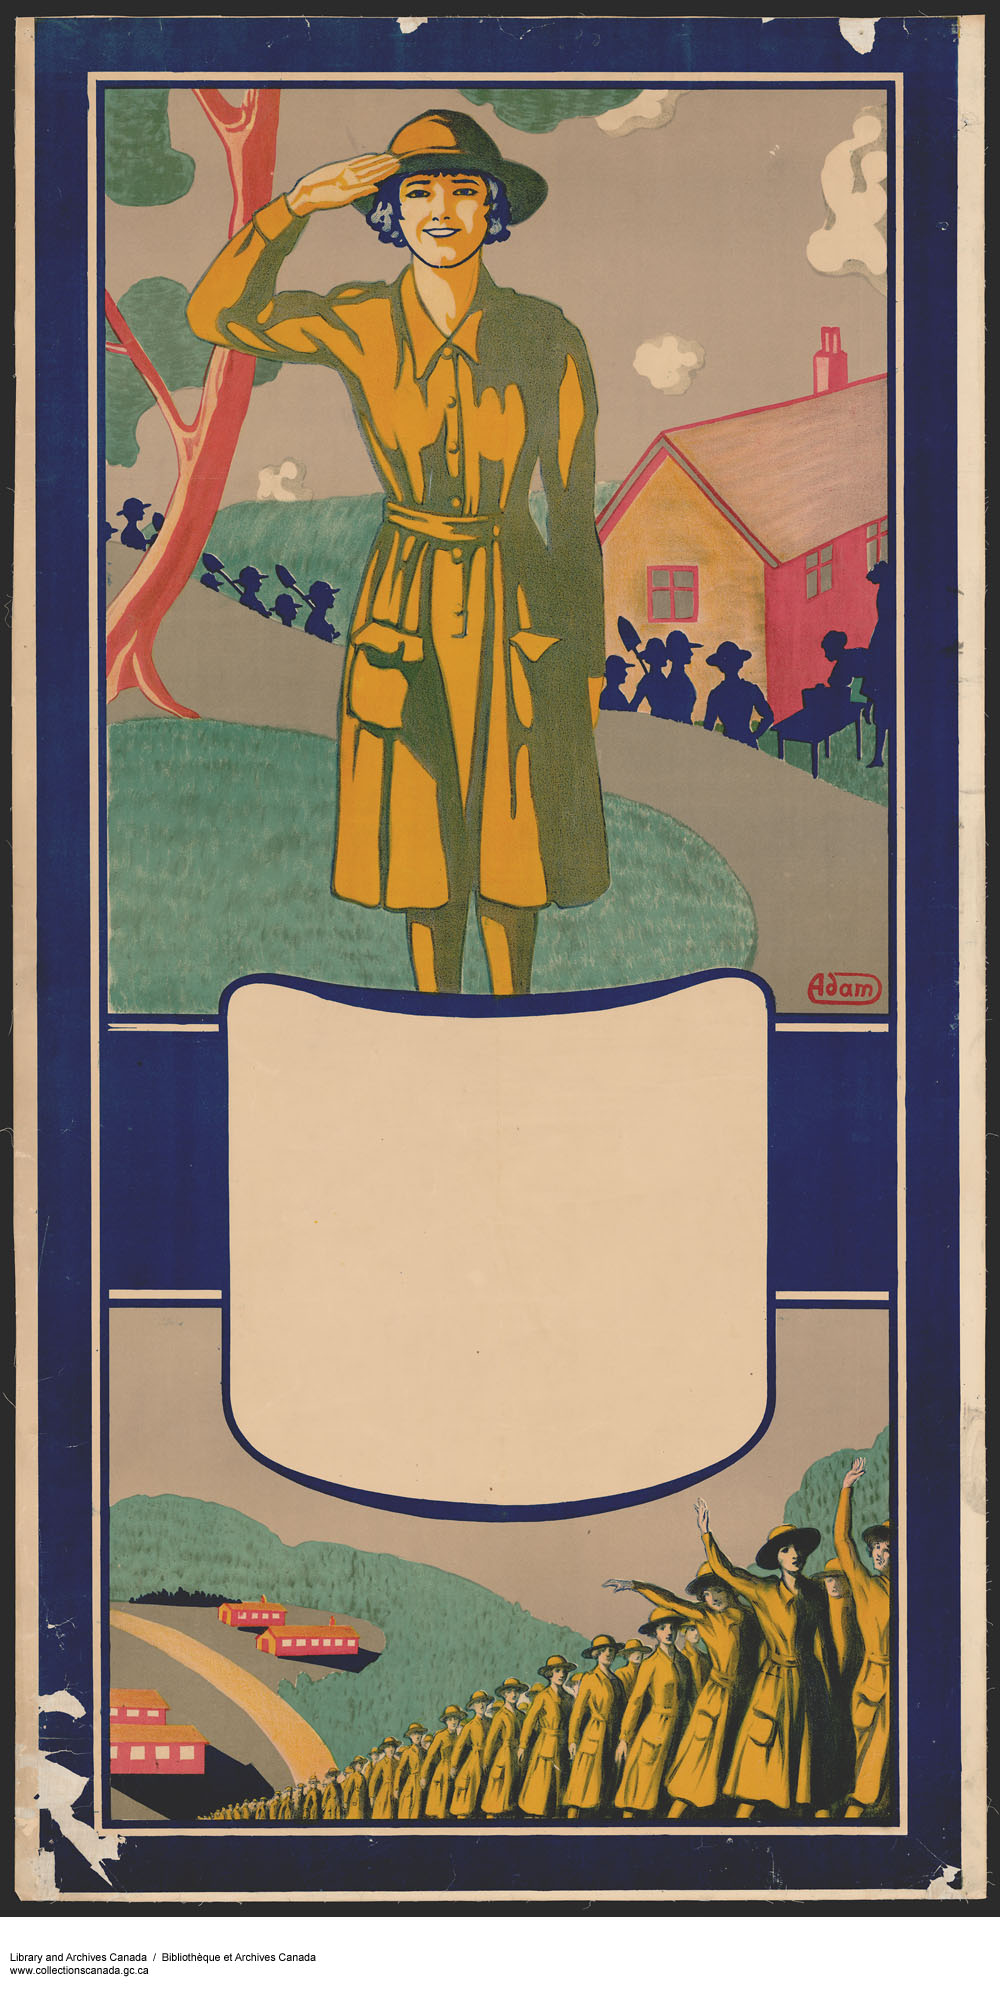 First World War Recruitment Poster for Women